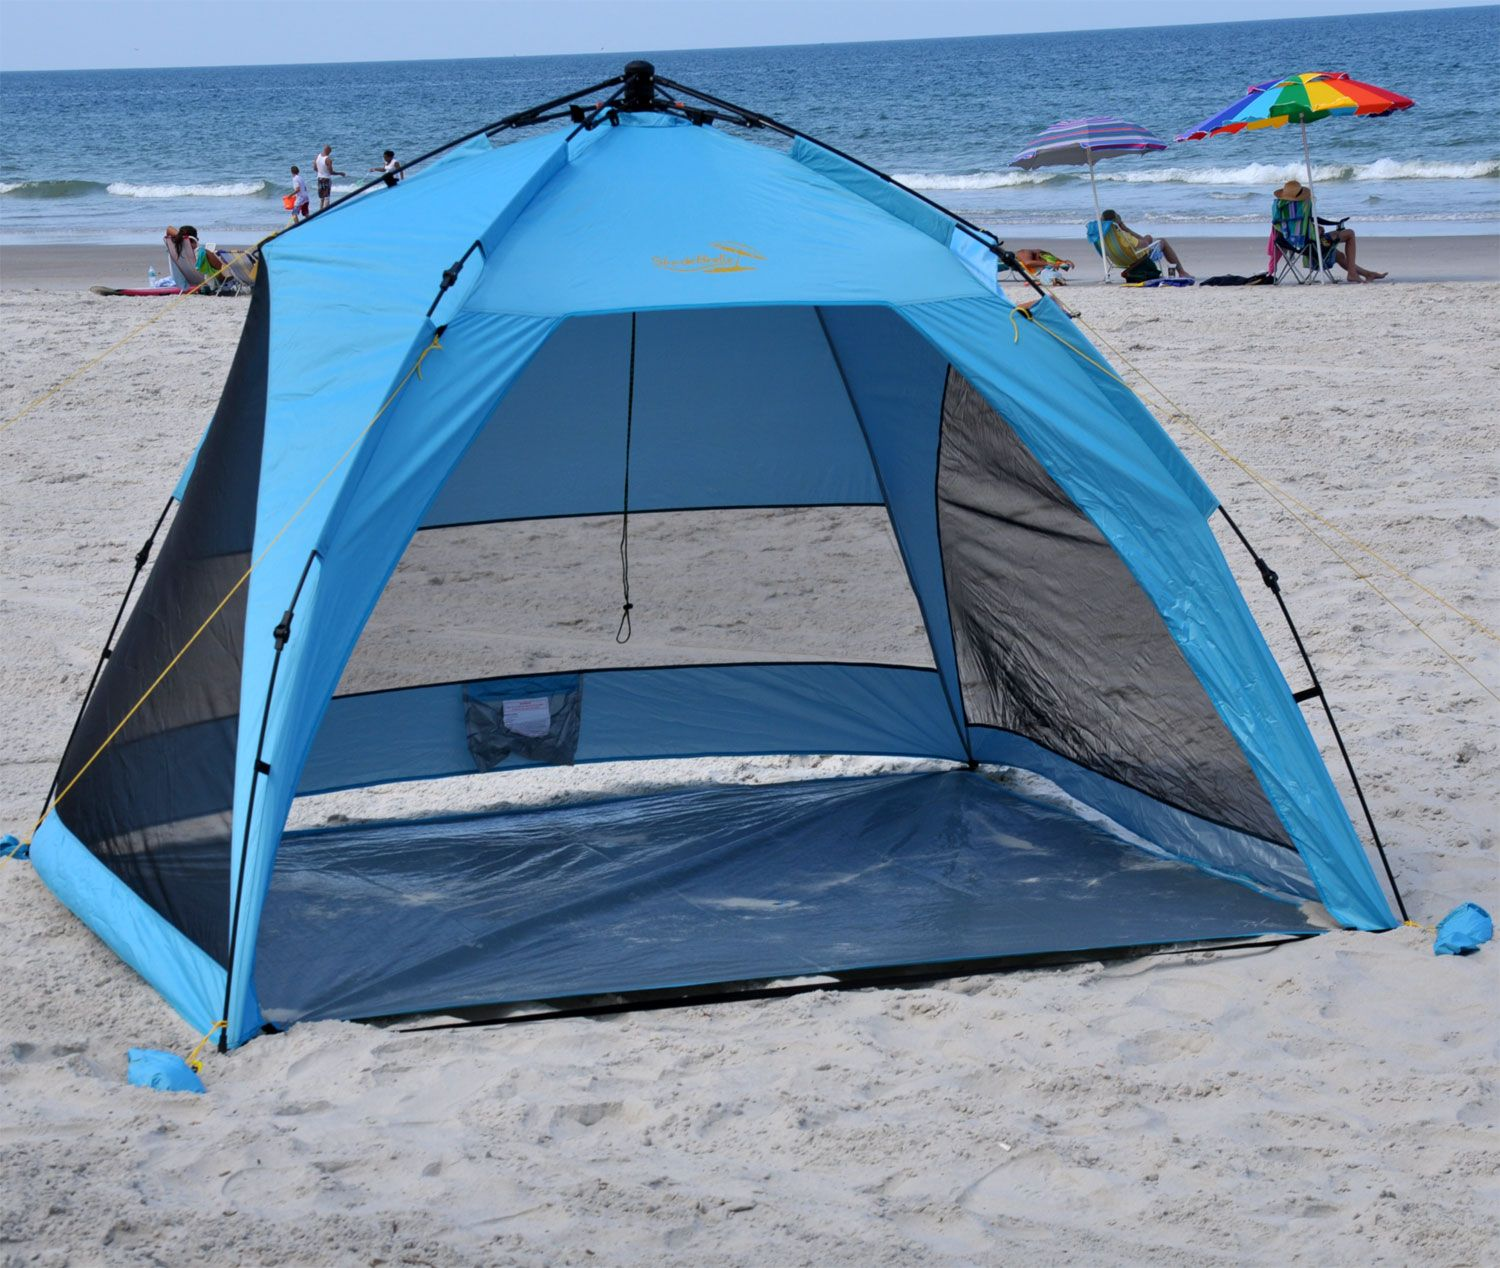 beach shade canopy | Beach Shelter | Jumbo Pop Up Beach Tents & beach shade canopy | Beach Shelter | Jumbo Pop Up Beach Tents ...